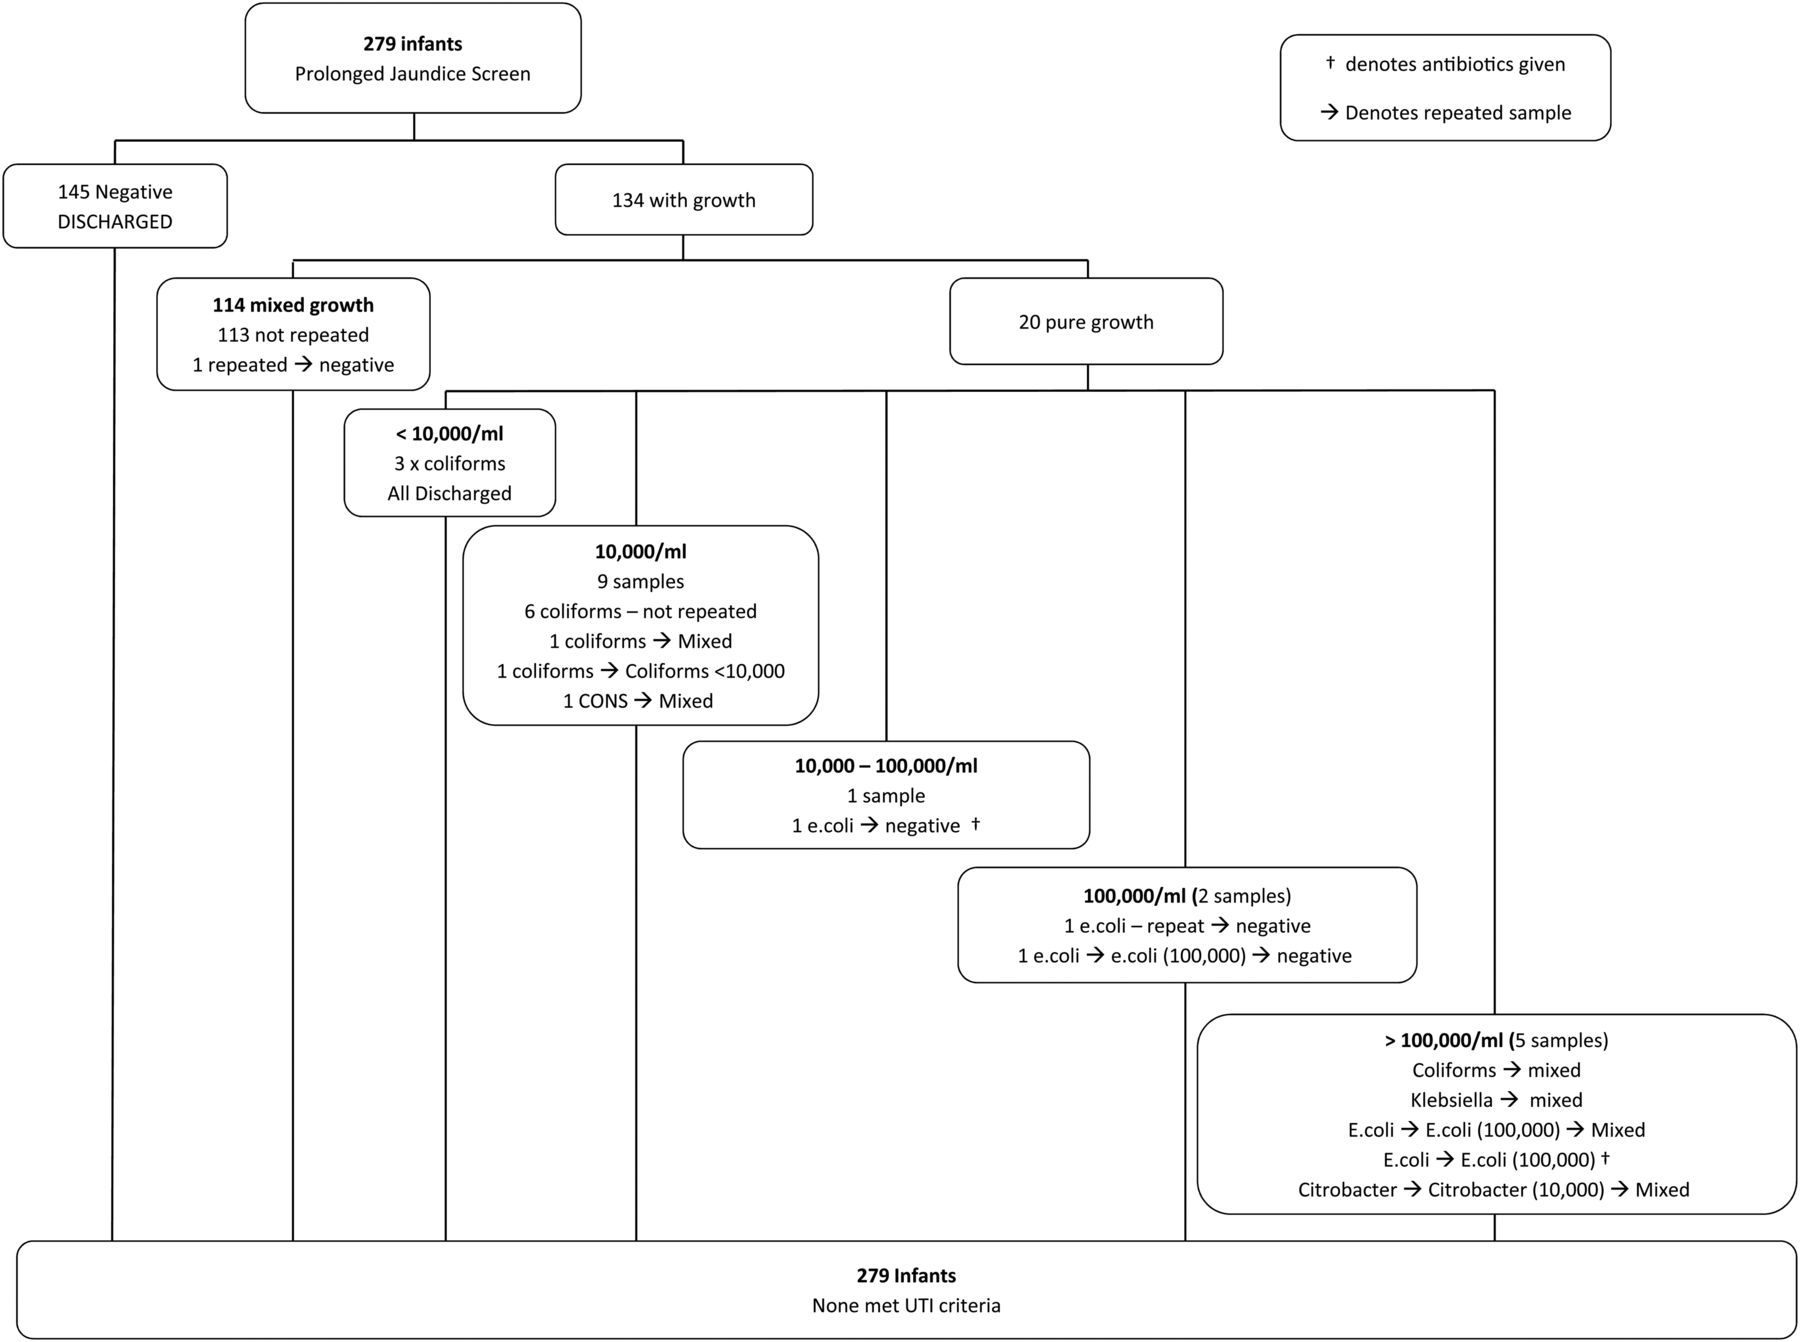 Is Screening For Urine Infection In Well Infants With Prolonged Jaundice Required Local Review And Meta Analysis Of Existing Data Archives Of Disease In Childhood